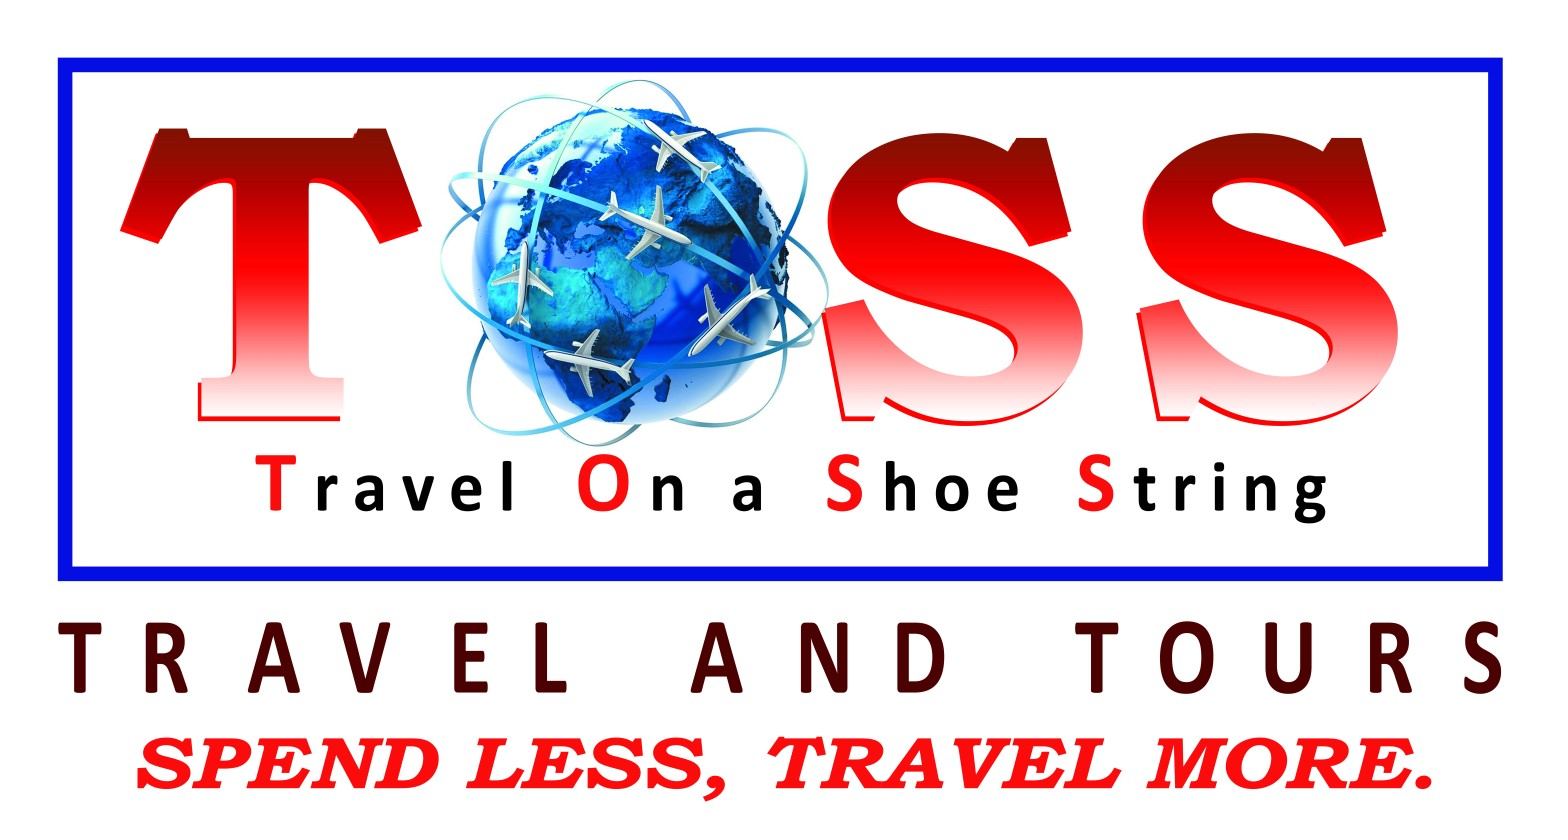 Toss travel and tours manila affordable cheap safe